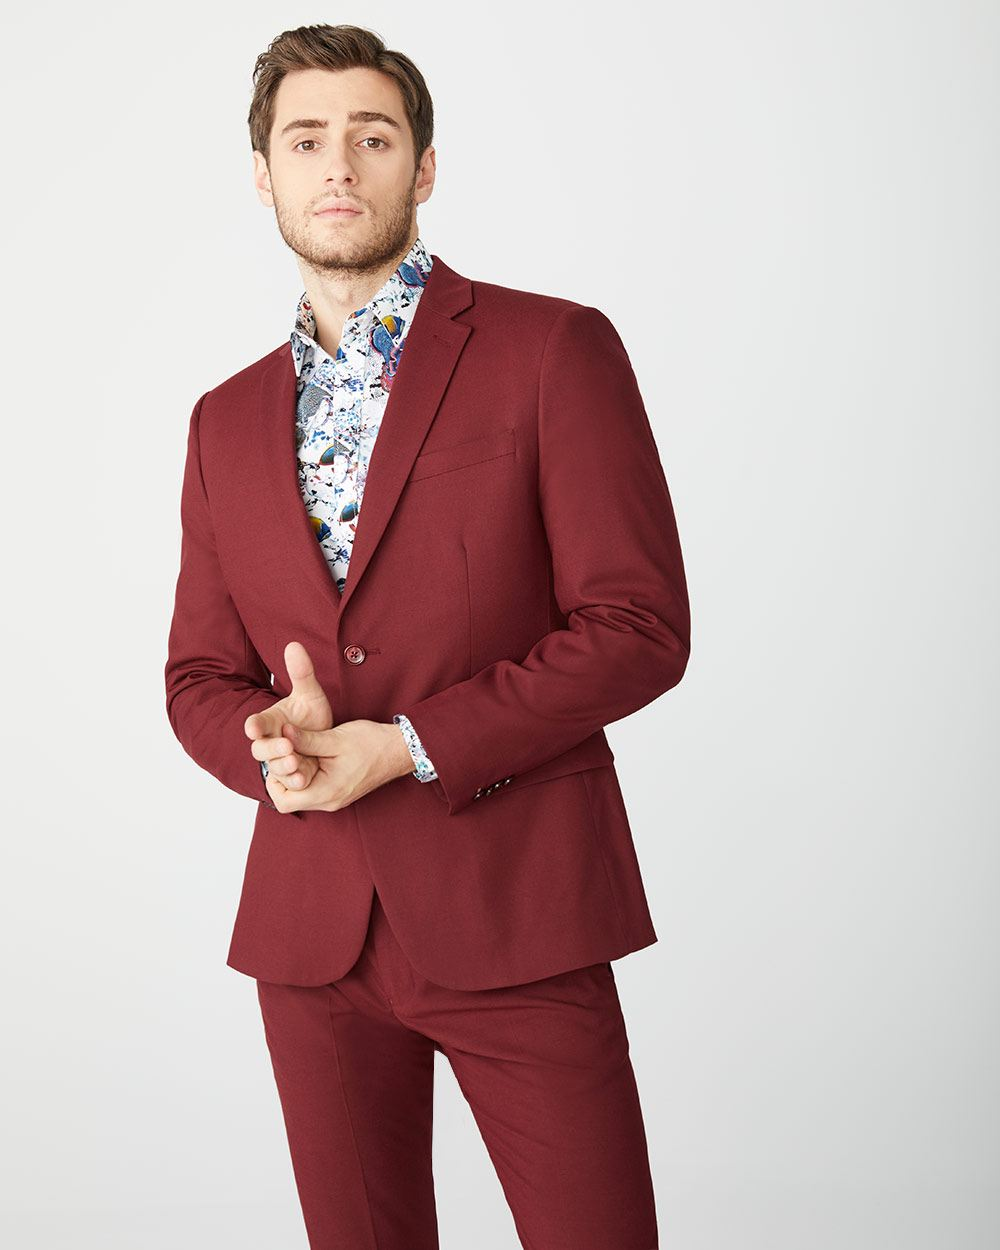 Tailored fit Marsala Red suit blazer